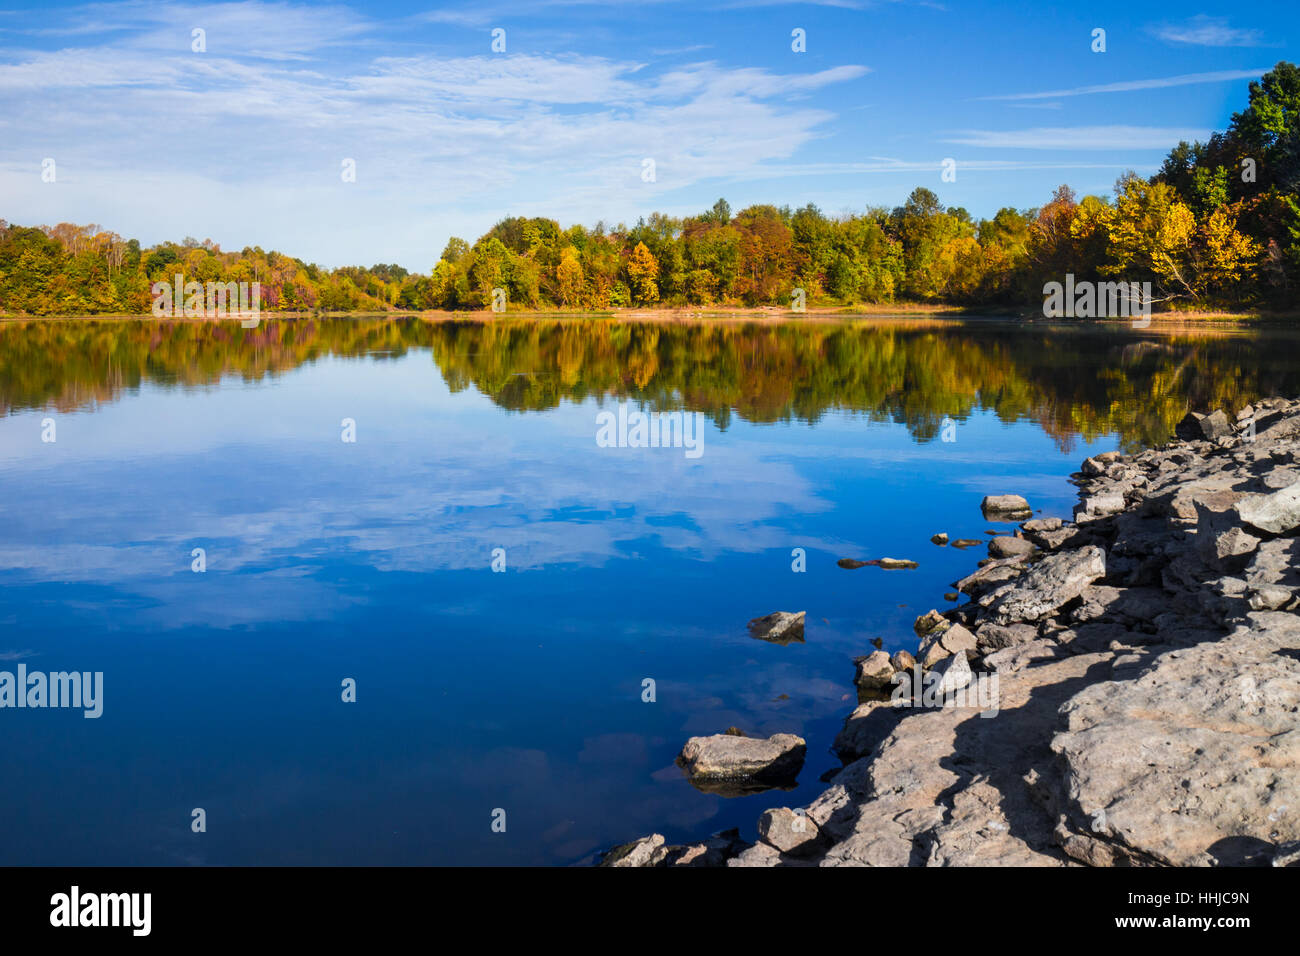 Early fall colors are reflected in the still blue waters of Bluecat Lake in southern Tennessee Stock Photo